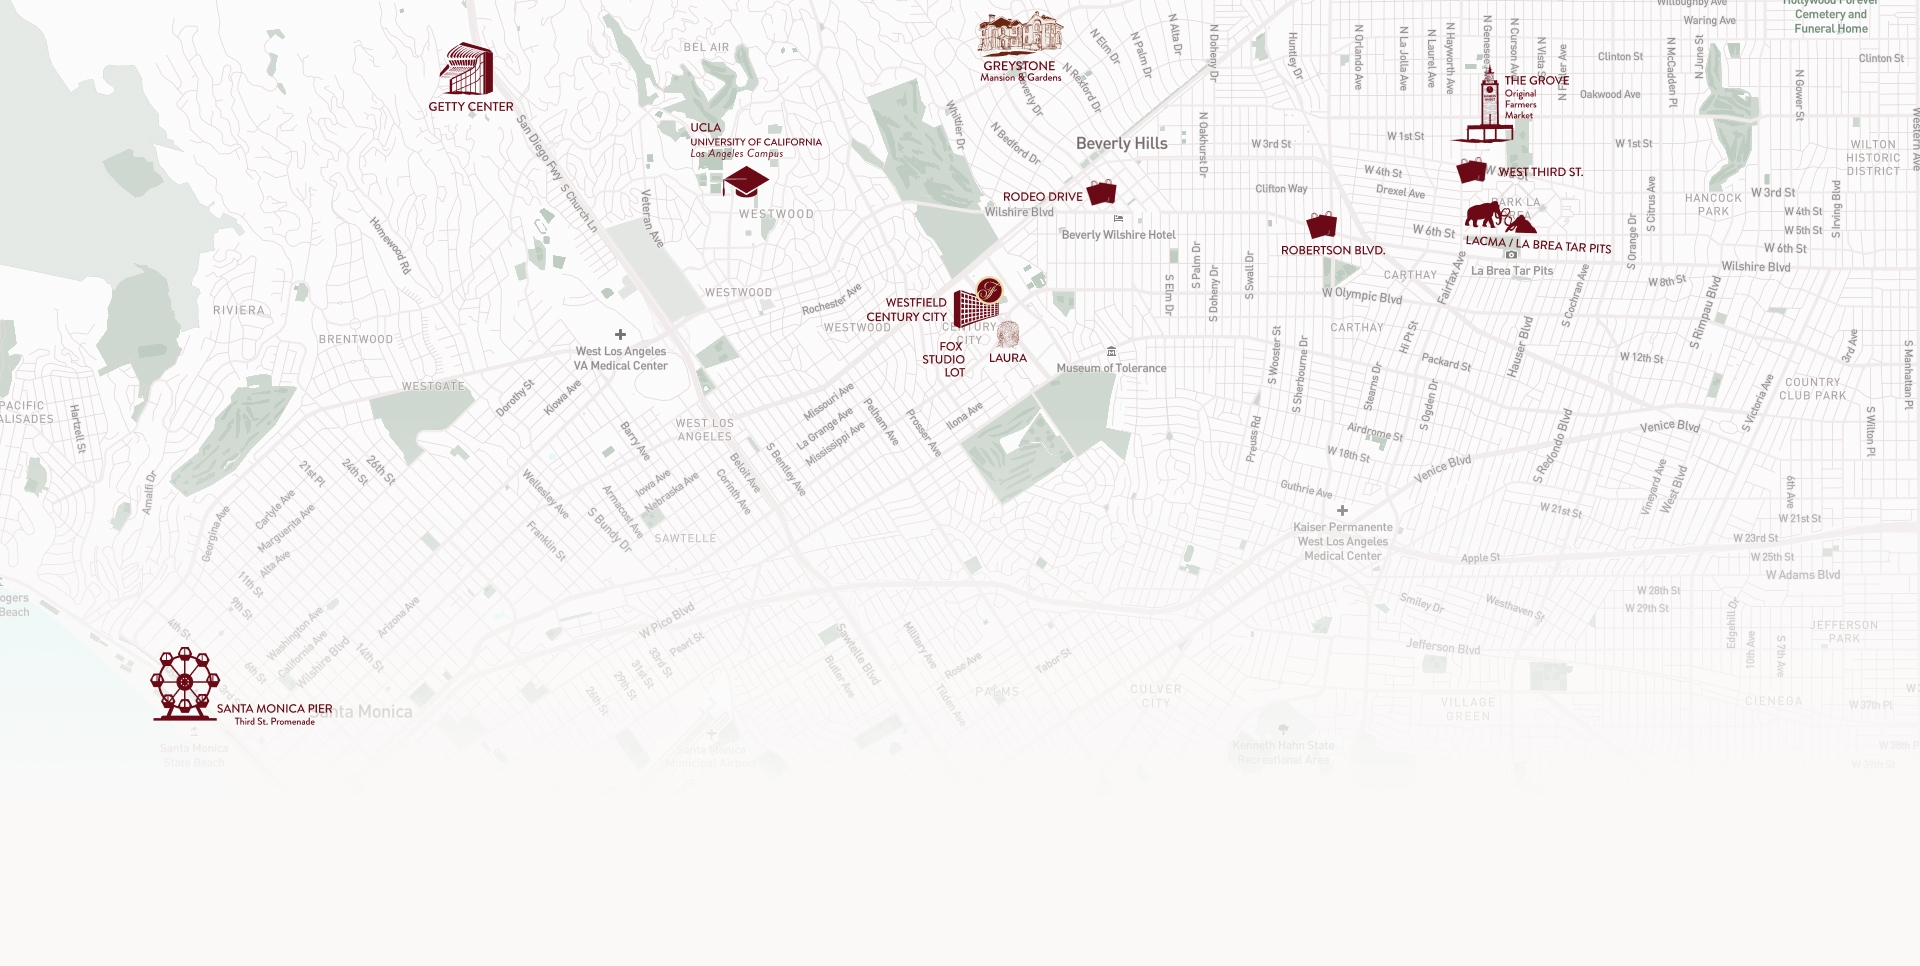 A map of LA with landmarks.